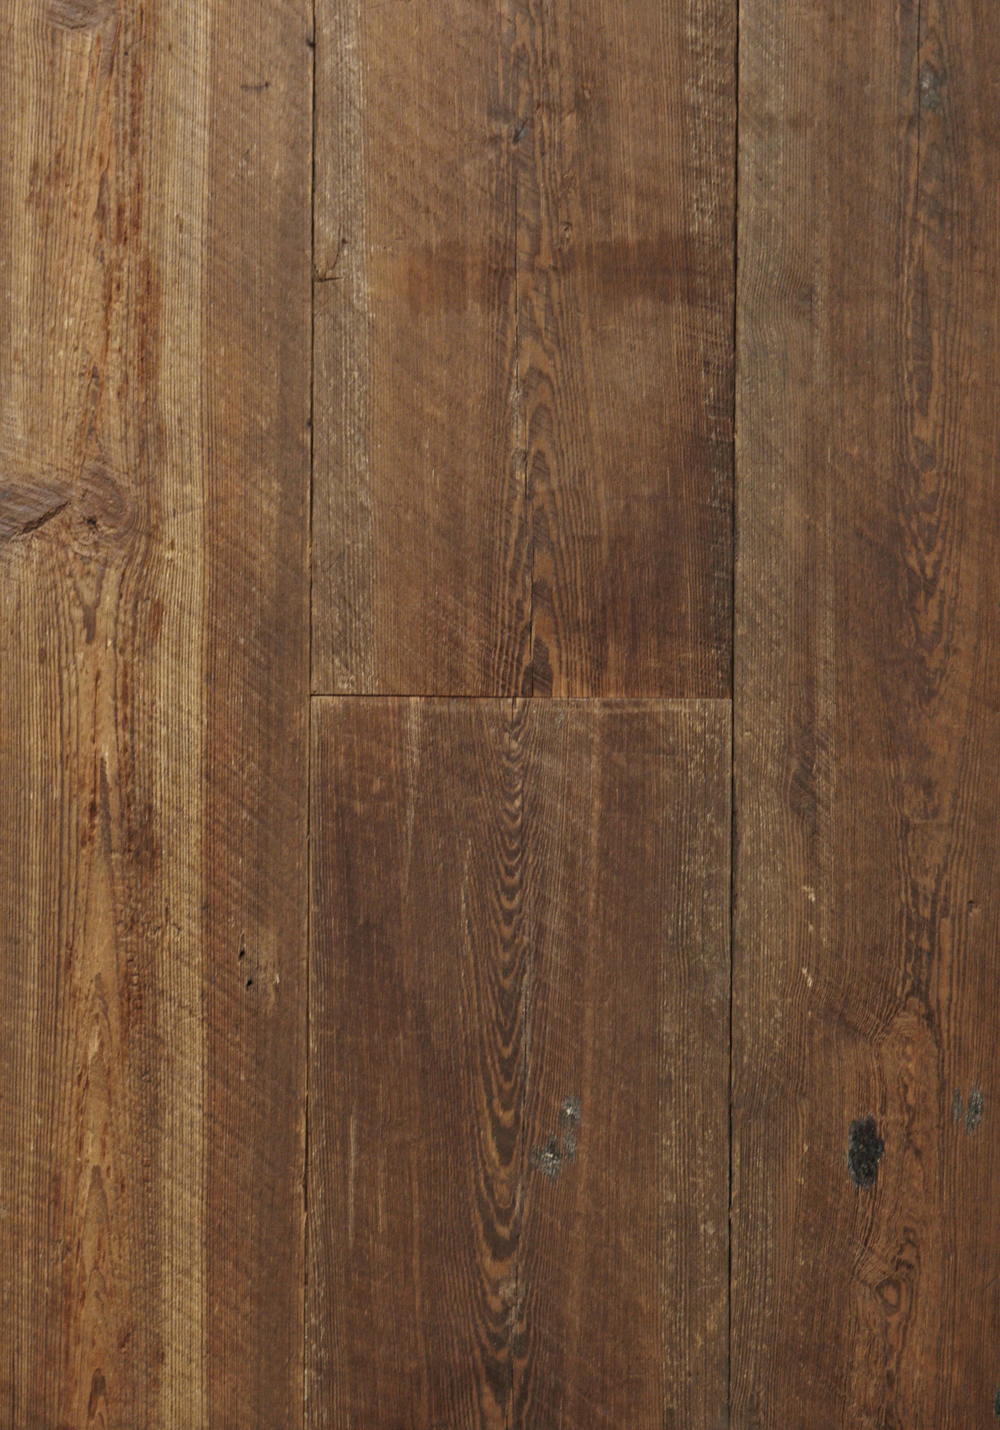 Reclaimed Heart Pine Original, Skiped Bare Poly Prime 8